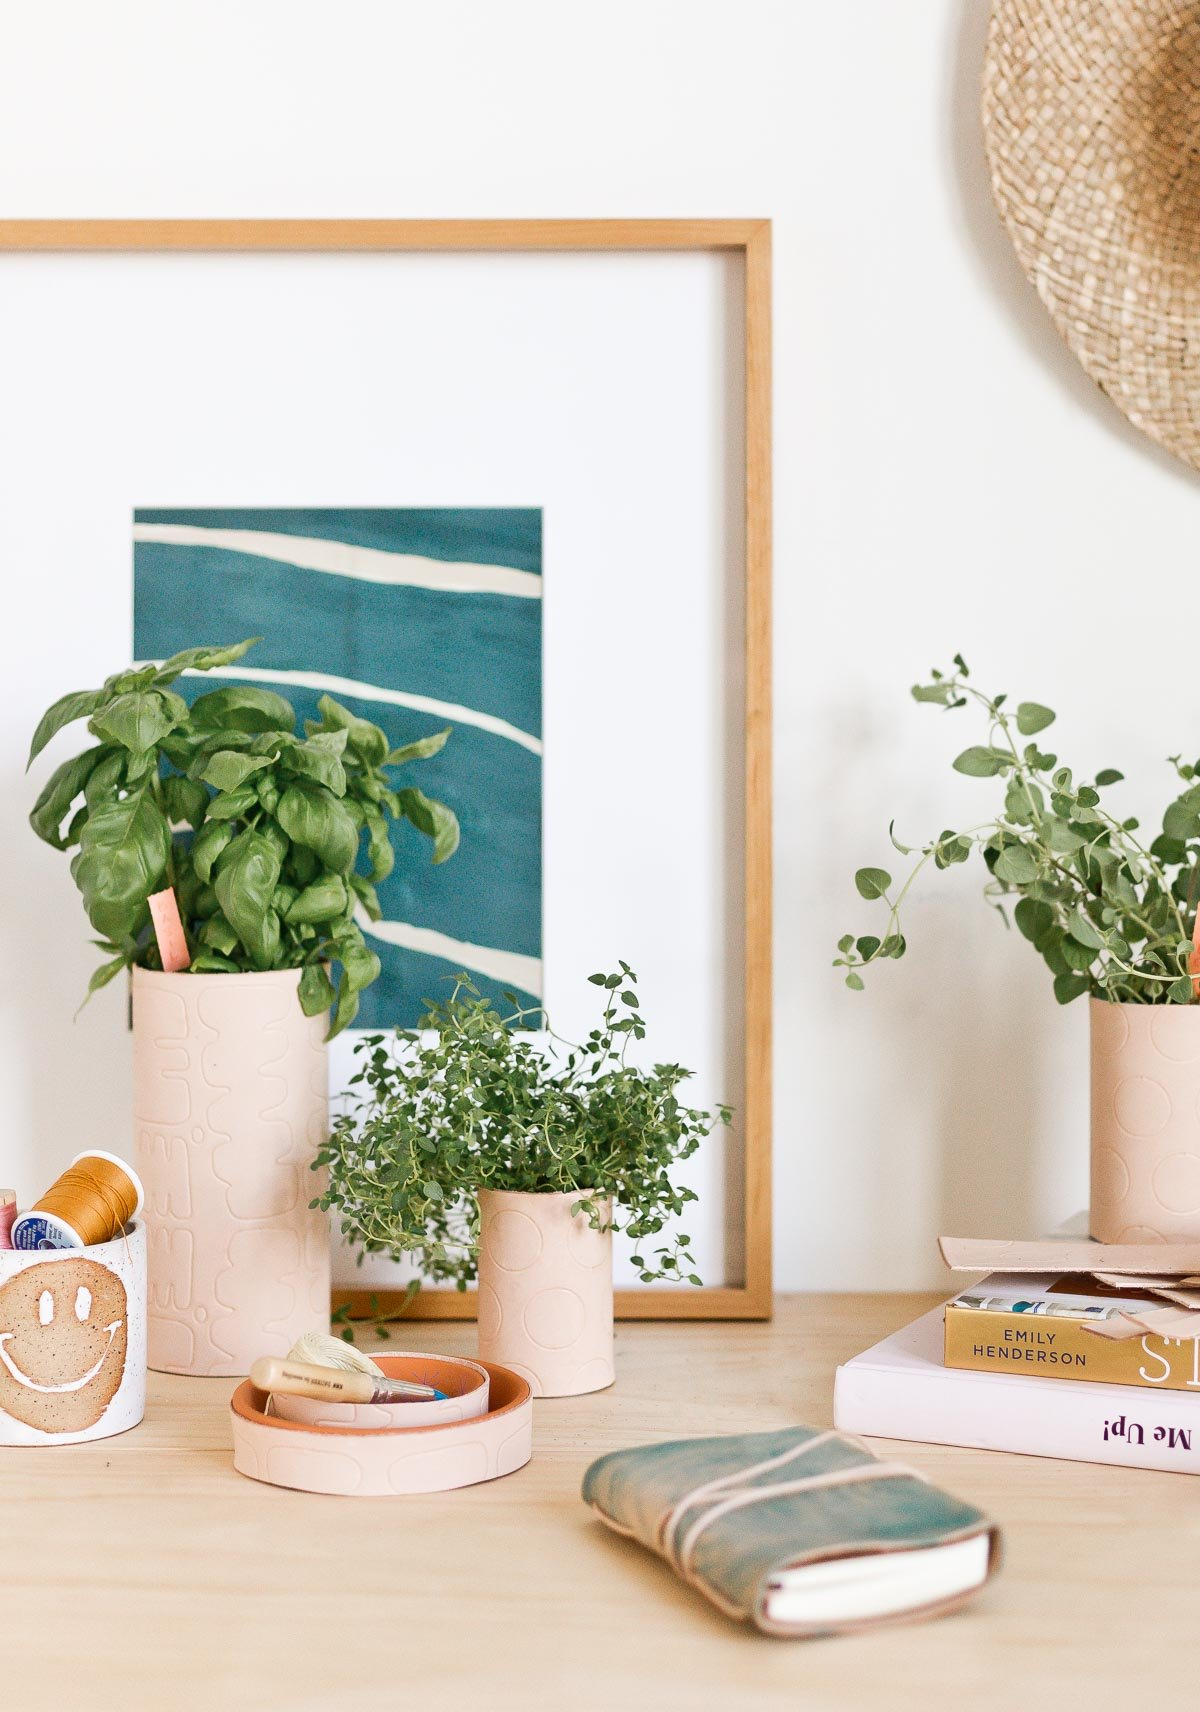 3 Cool (DIY) Things to Make with Leather Right Now. Wanna make something with leather? Try these unique DIY leather ideas that you cane embellish with a Cricut Maker with embossed patterns and more. #leather #diy #leatherdiy #homedecor #workspace #desk #indoorherbgarden